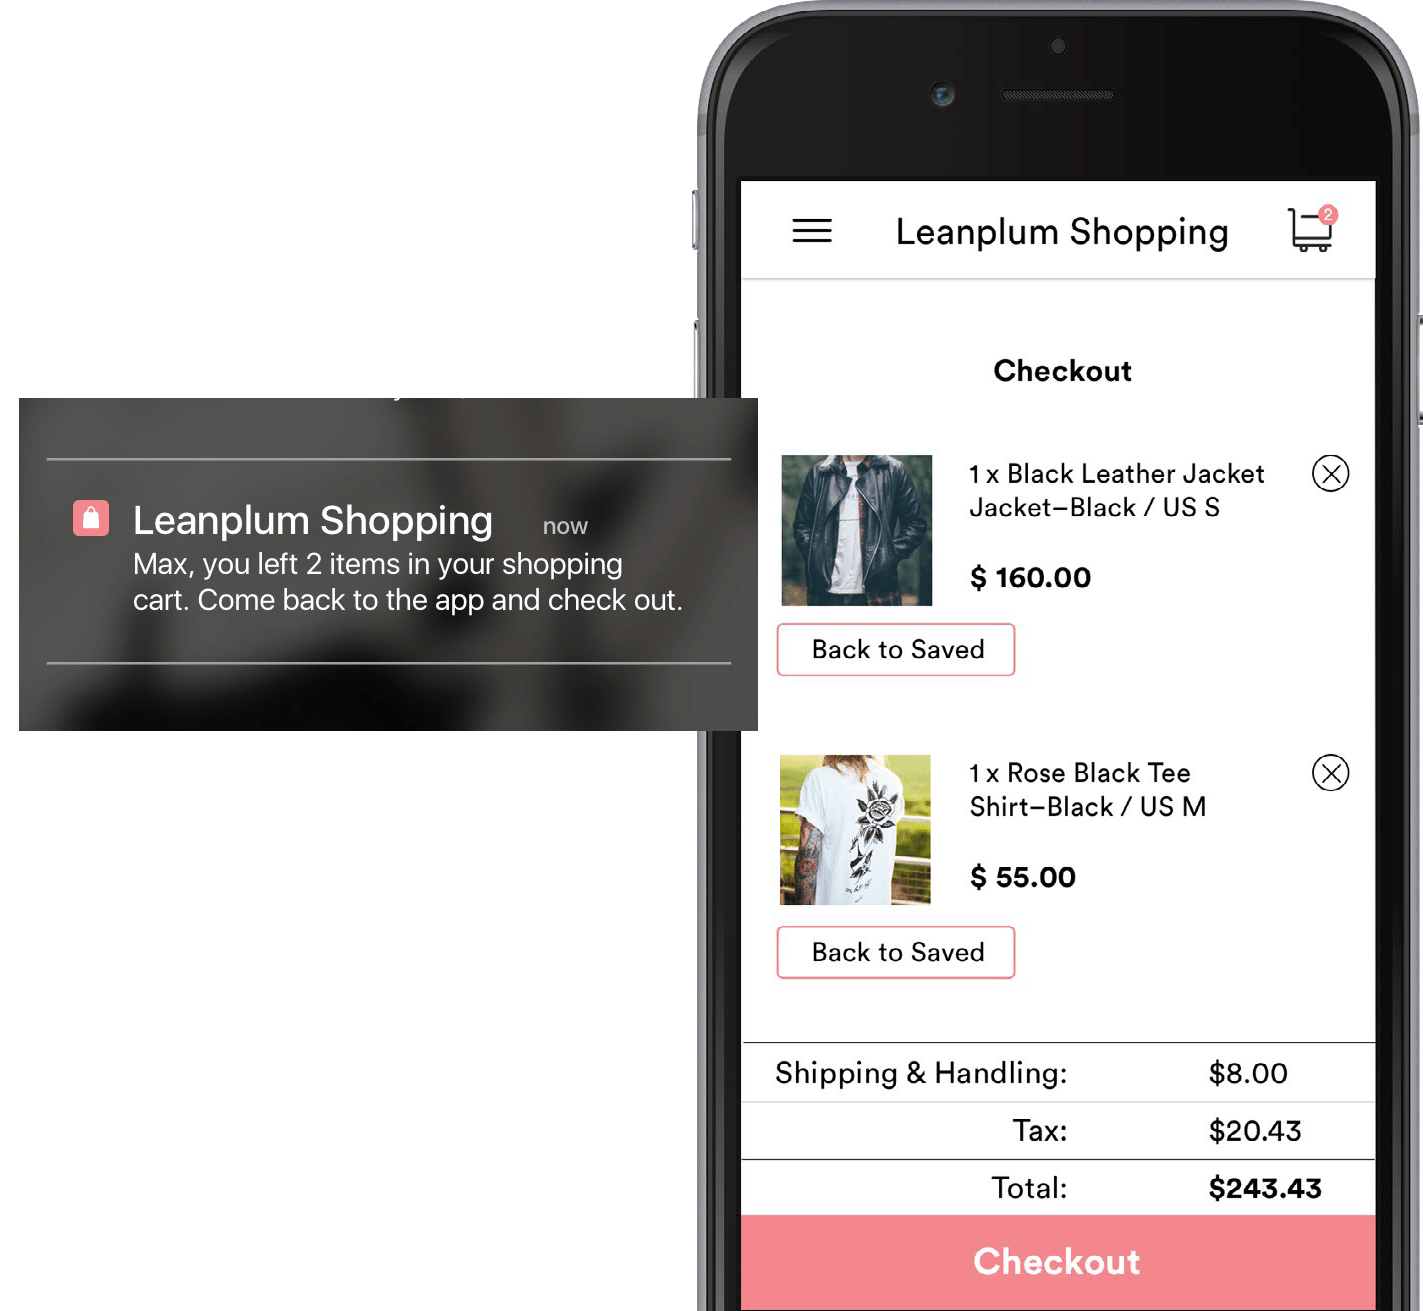 Real-Time Marketing cart abandonment